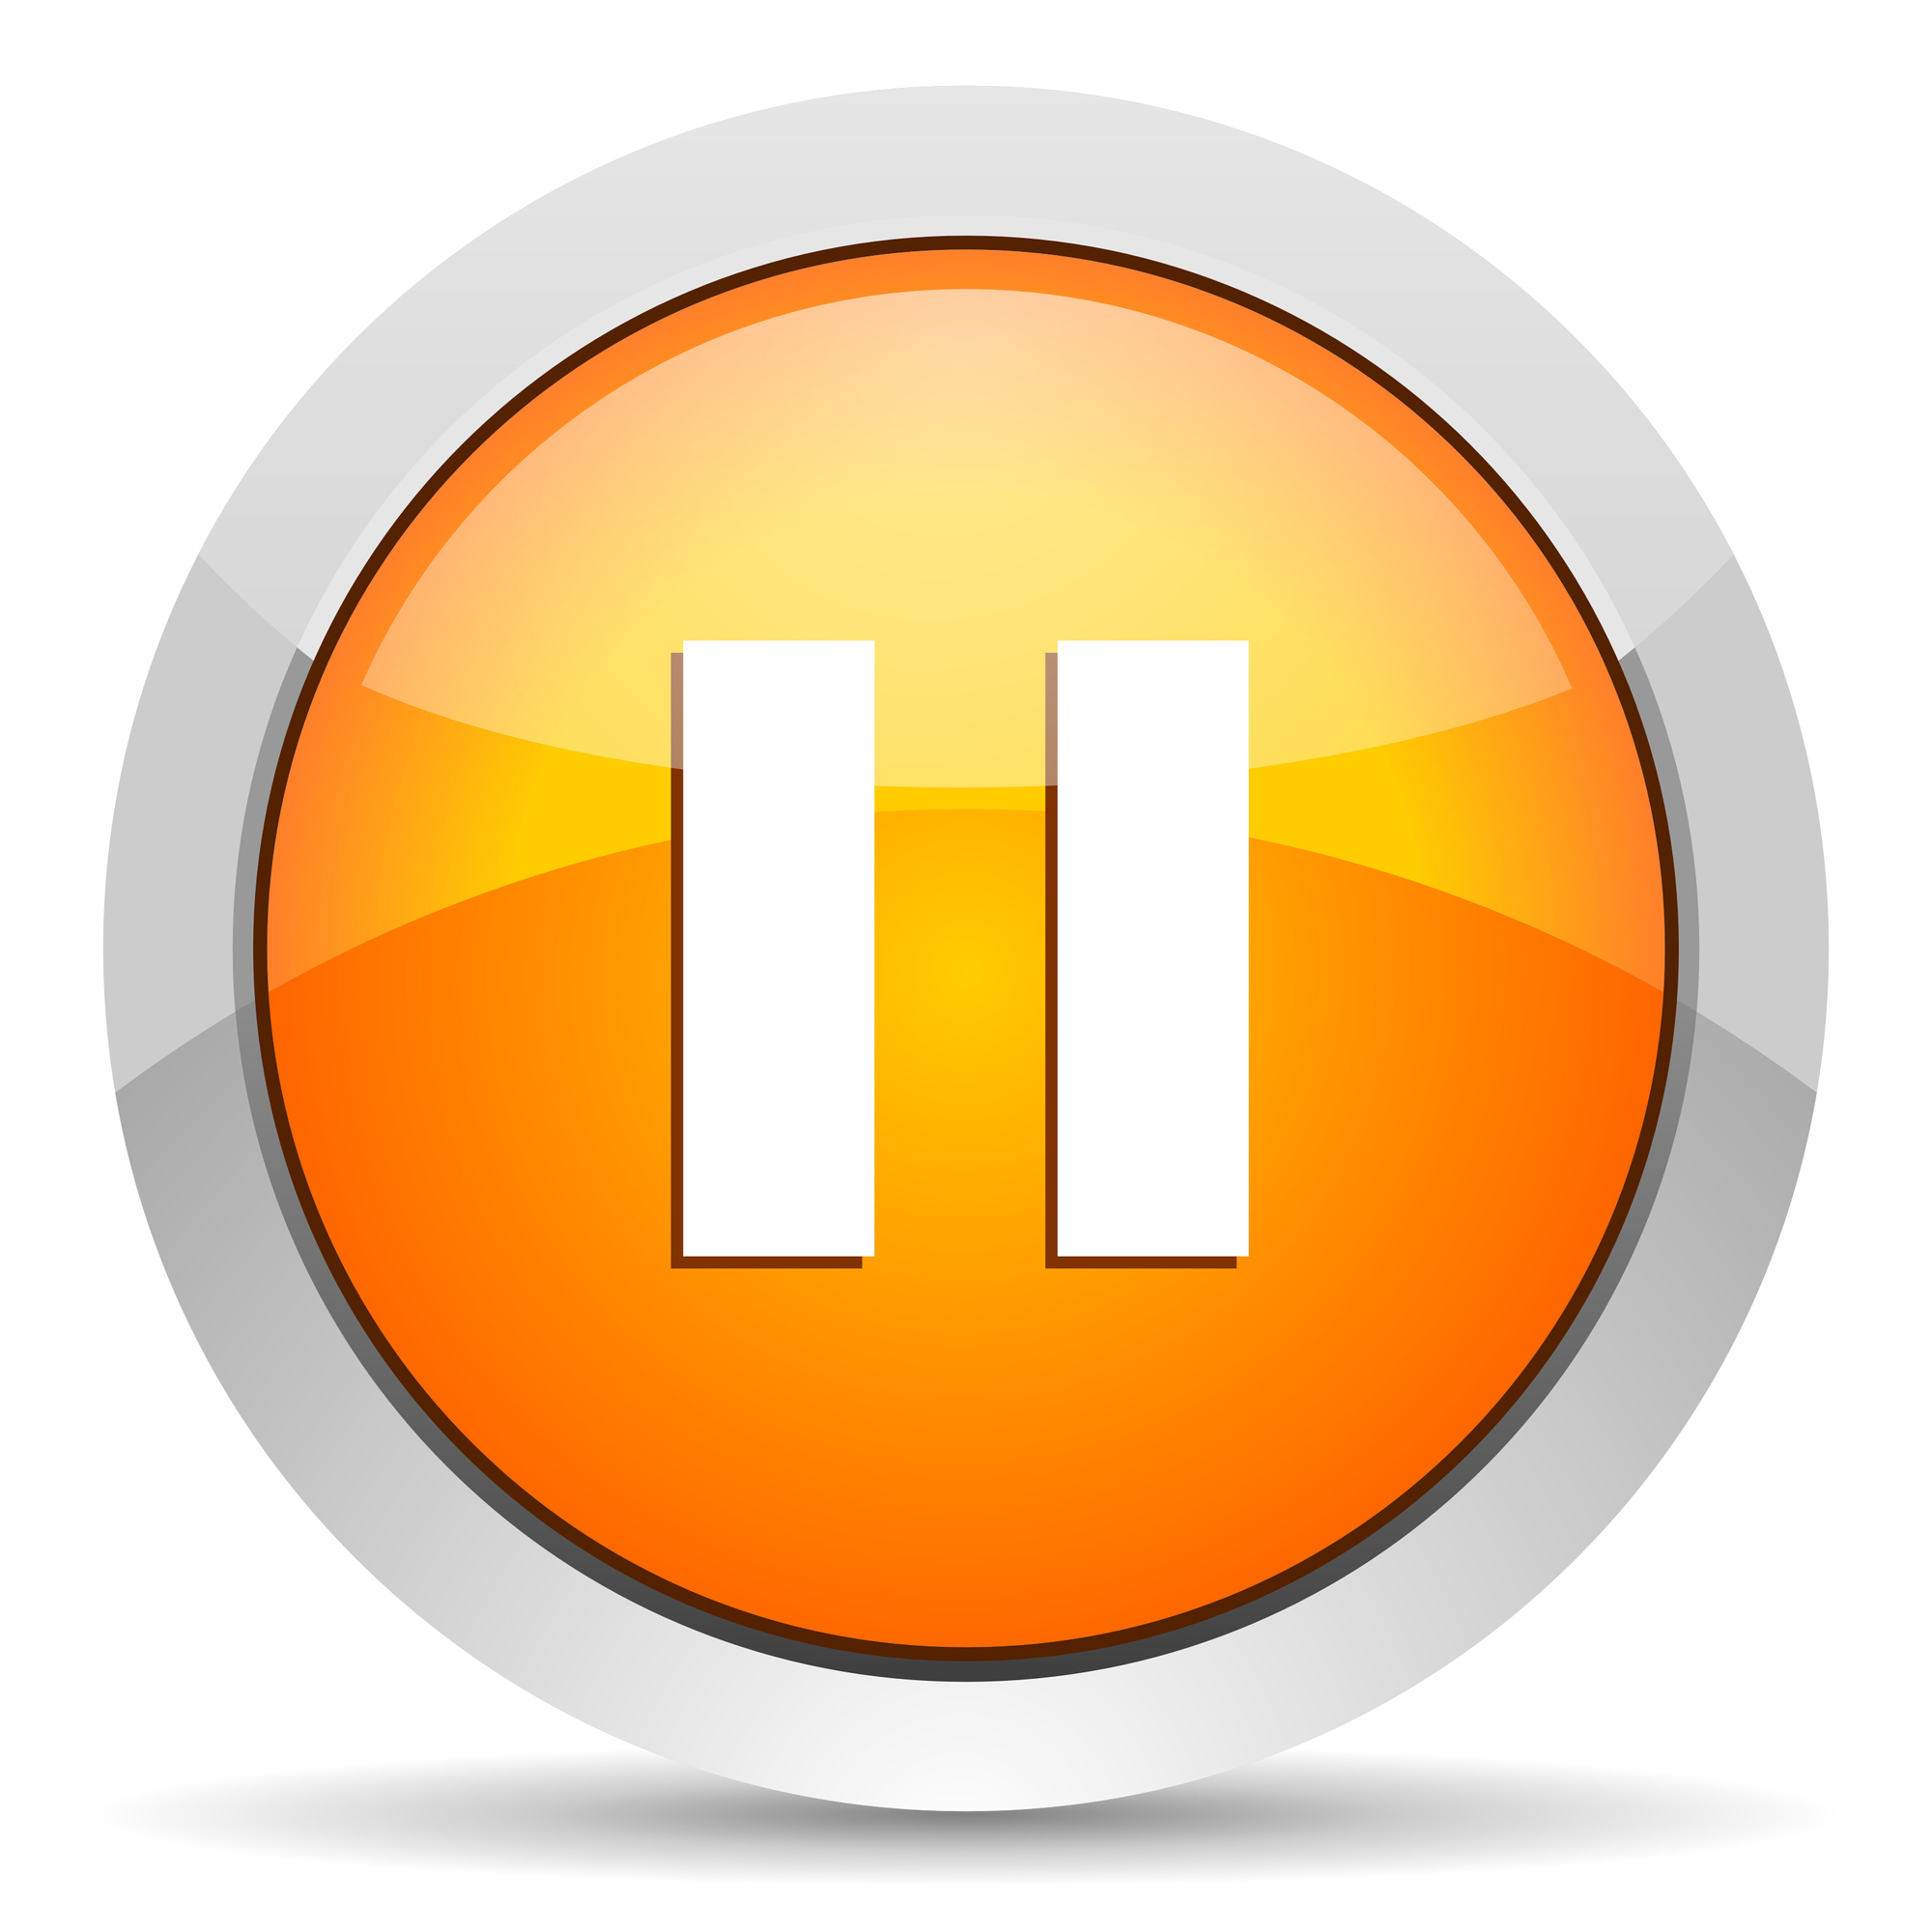 Orange pause Icon meaning we need to pause in our lives to refocus